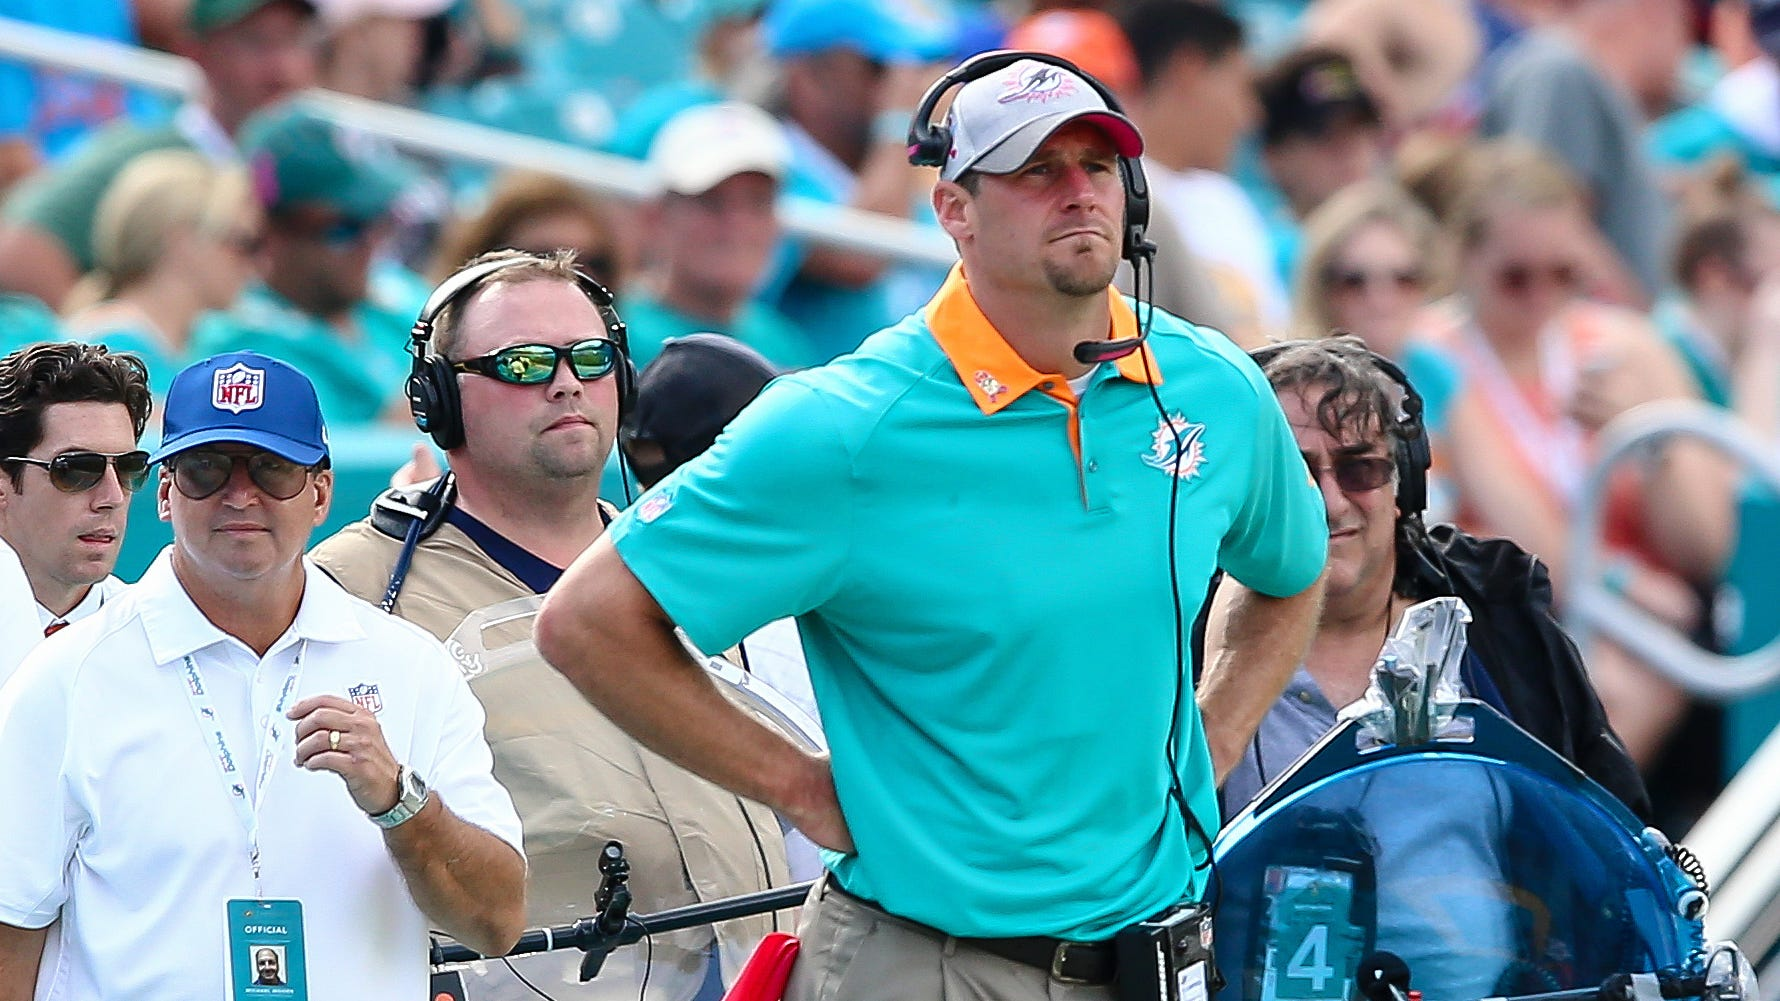 Miami Dolphins interim head coach Dan Campbell during the game against the Houston Texans, Oct. 25, 2015.